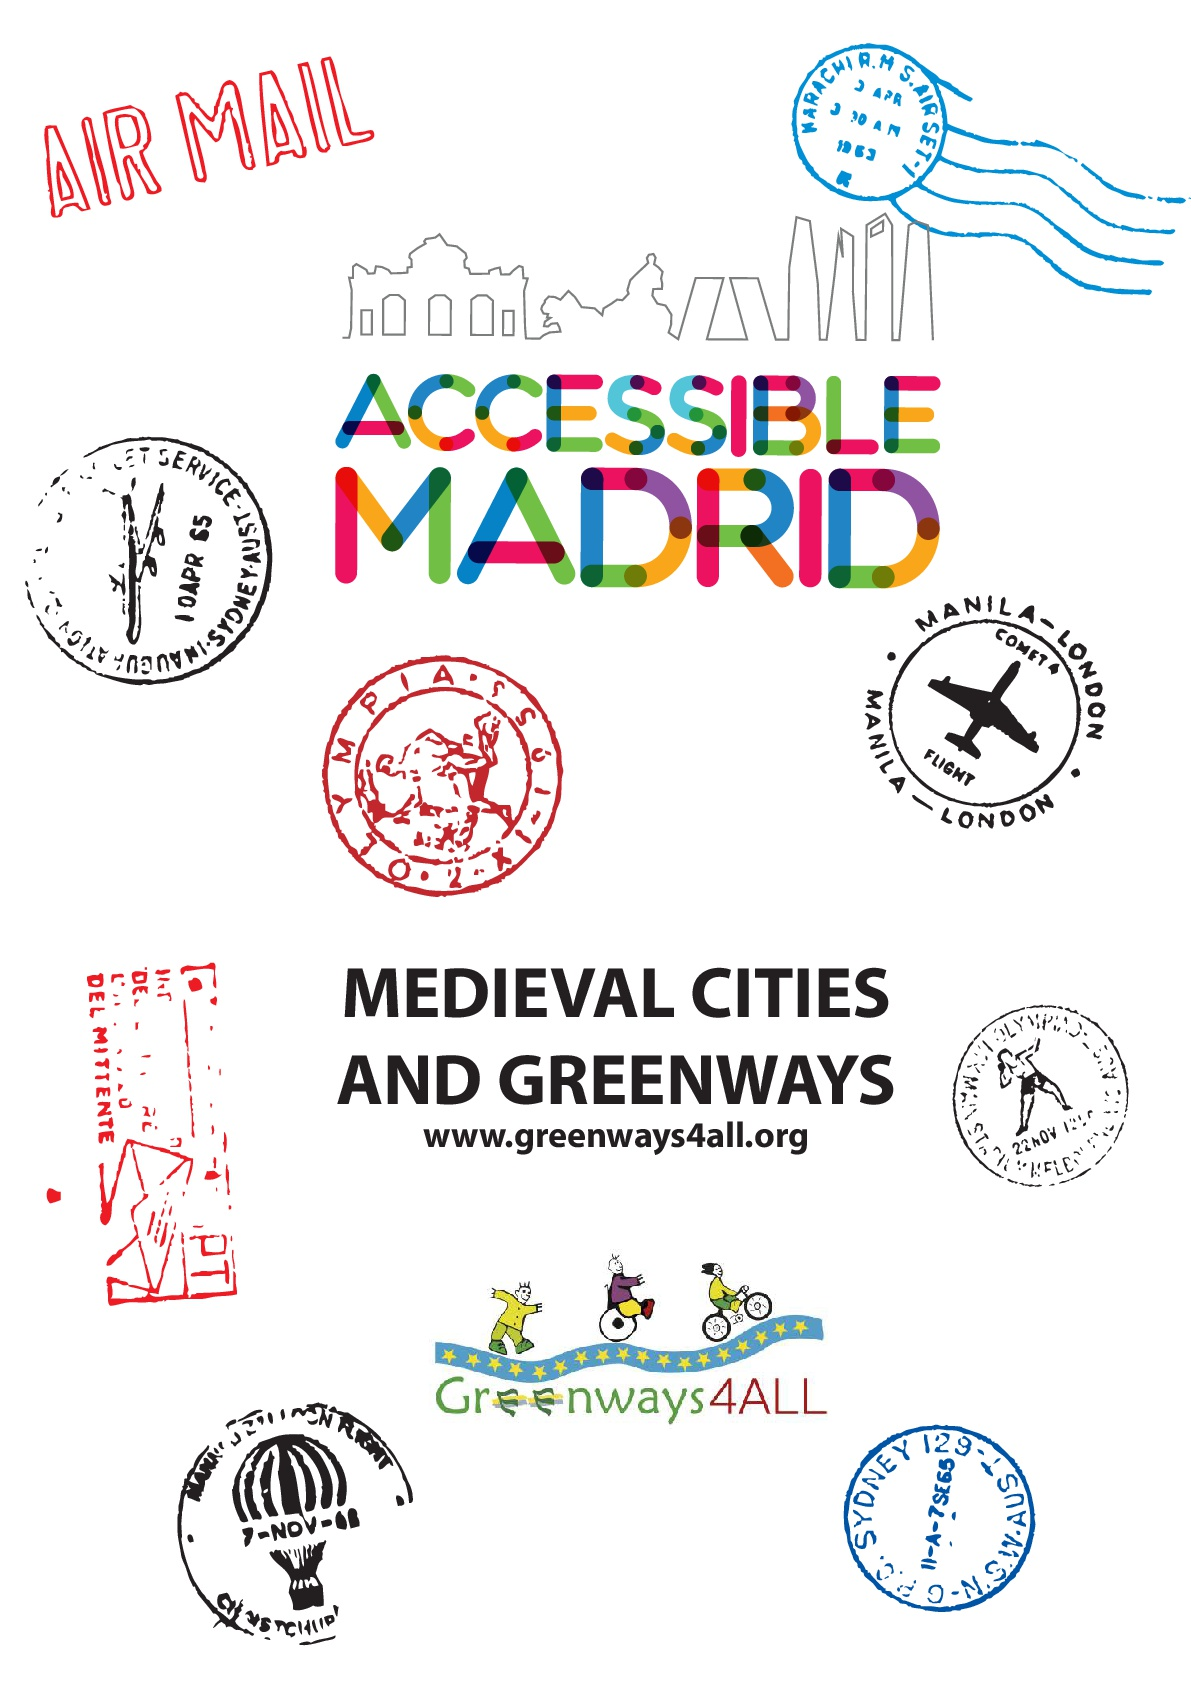 MEDIEVAL CITIES AND GREENWAYS